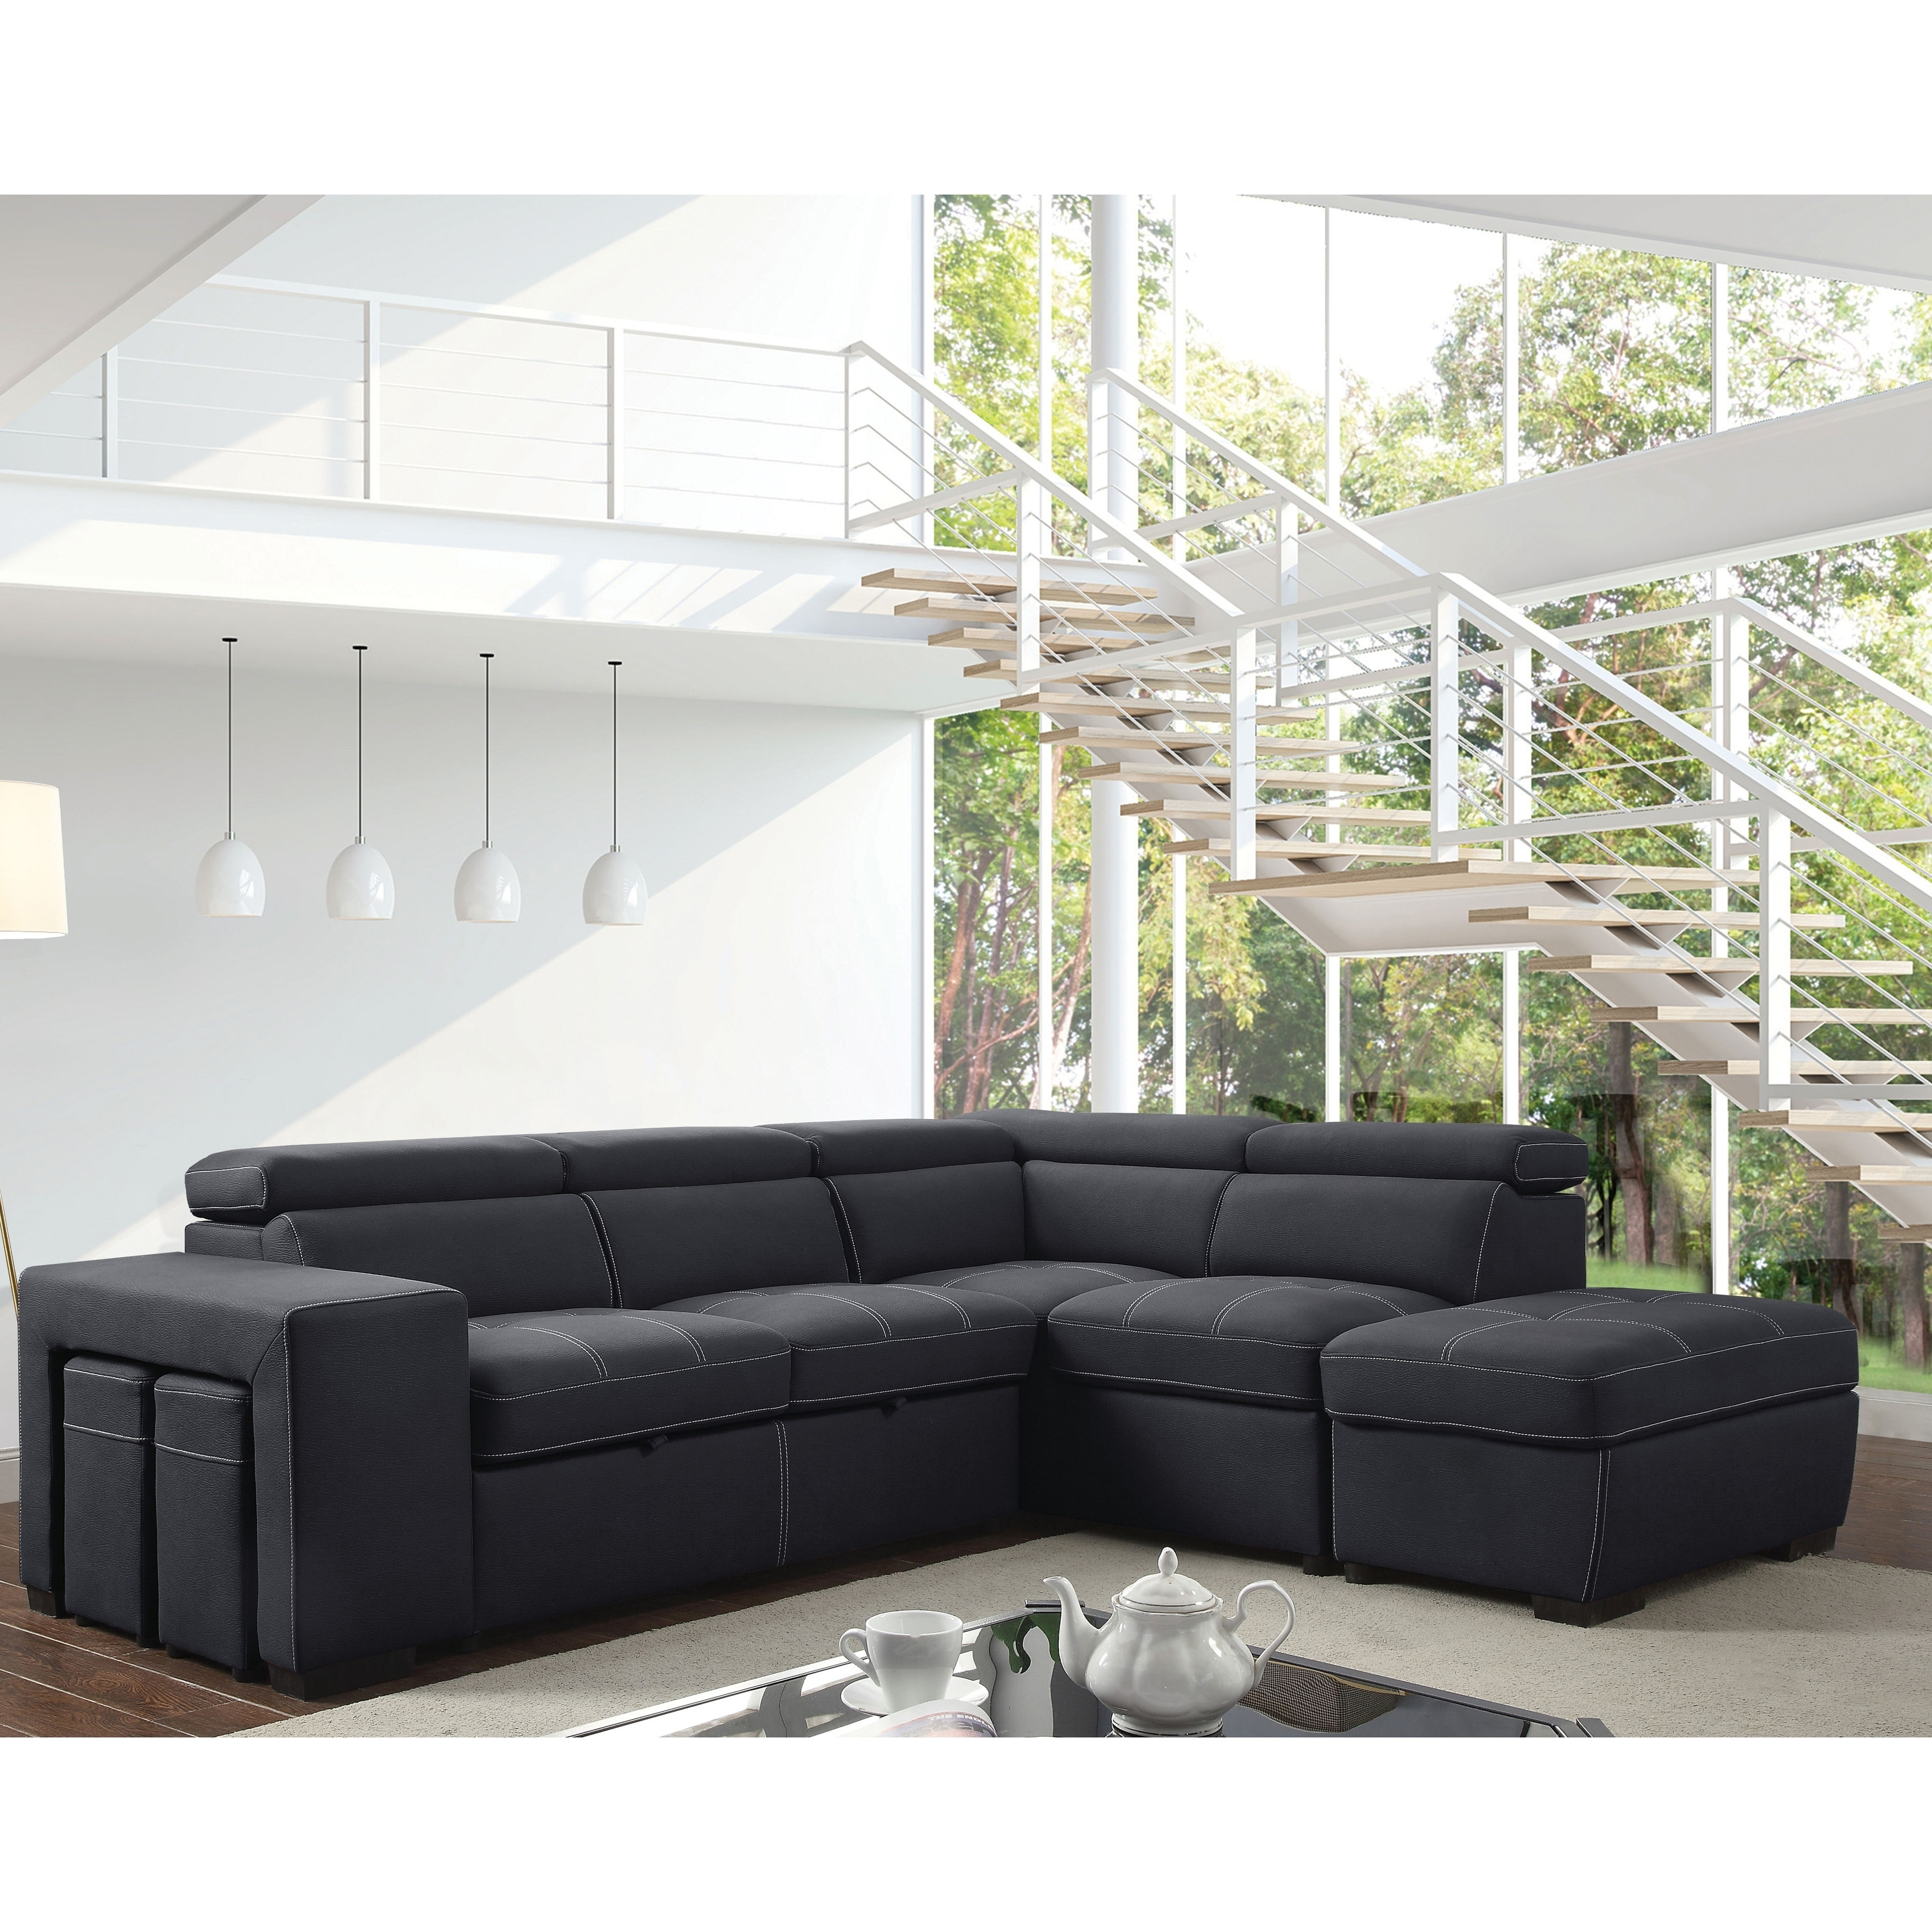 Buy Grey, Microfiber Sectional Sofas Online at Overstock ...